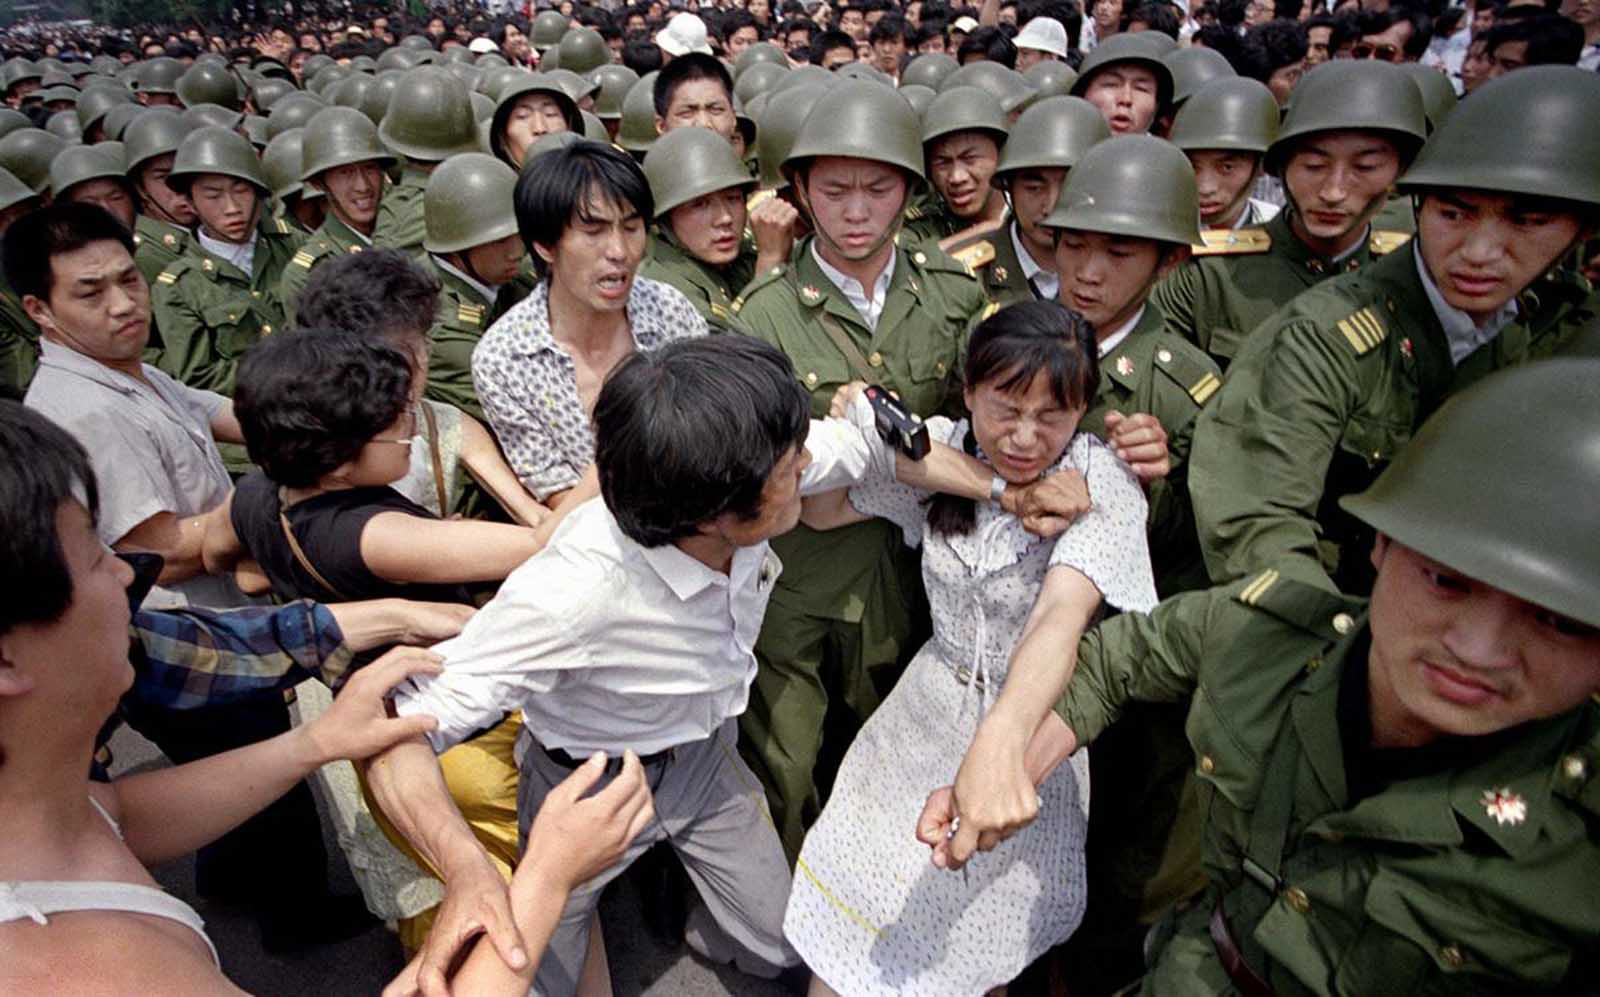 A young woman is caught between civilians and Chinese soldiers, who were trying to remove her from an assembly near the Great Hall of the People in Beijing, on June 3, 1989.